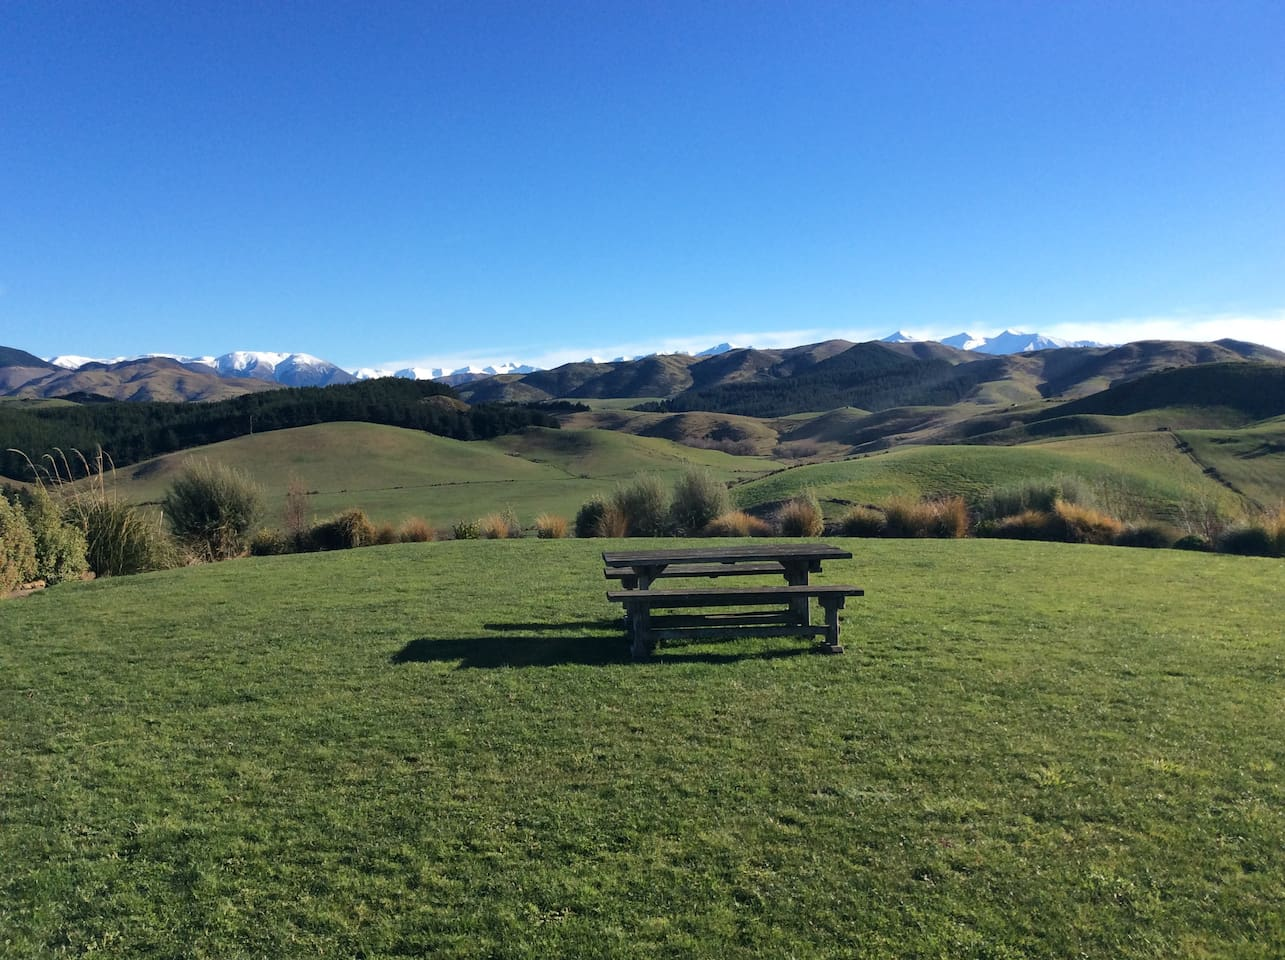 View of Southern Alps from living space